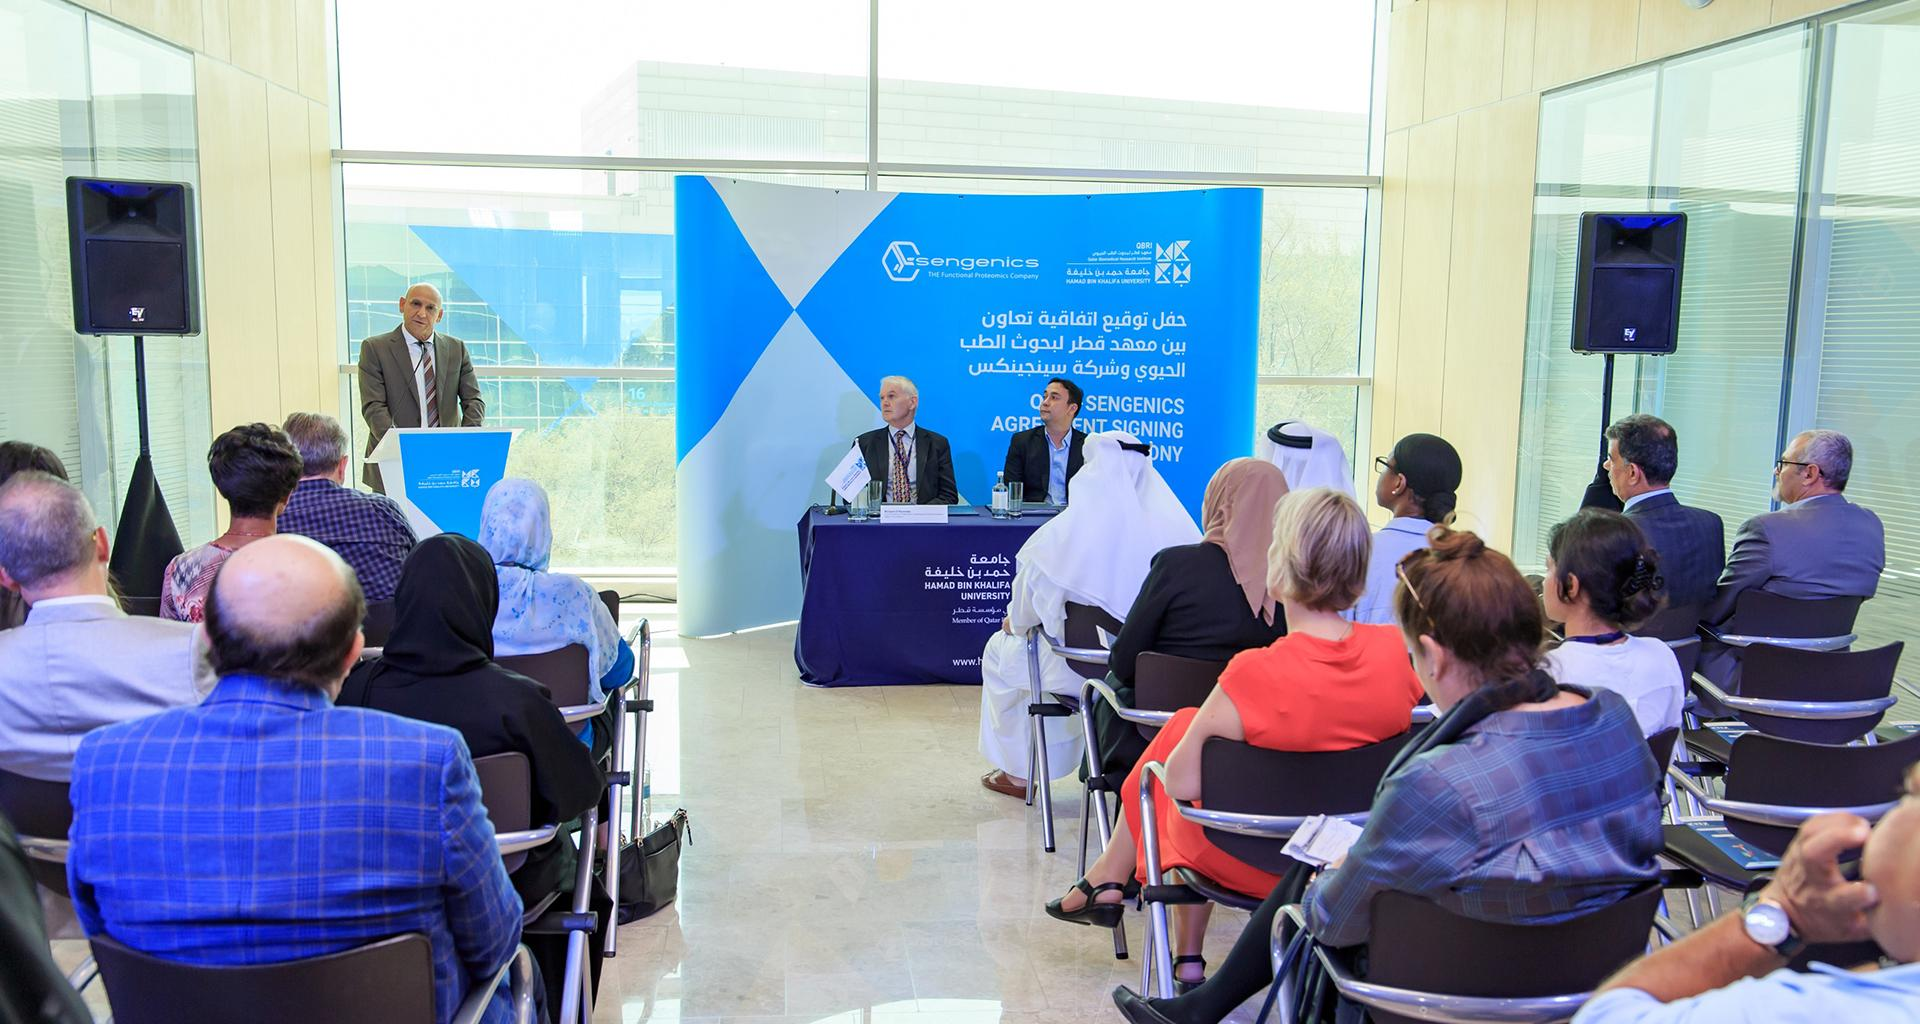 HBKU's Qatar Biomedical Research Institute Signs Impactful Agreement with Global Biotech Company